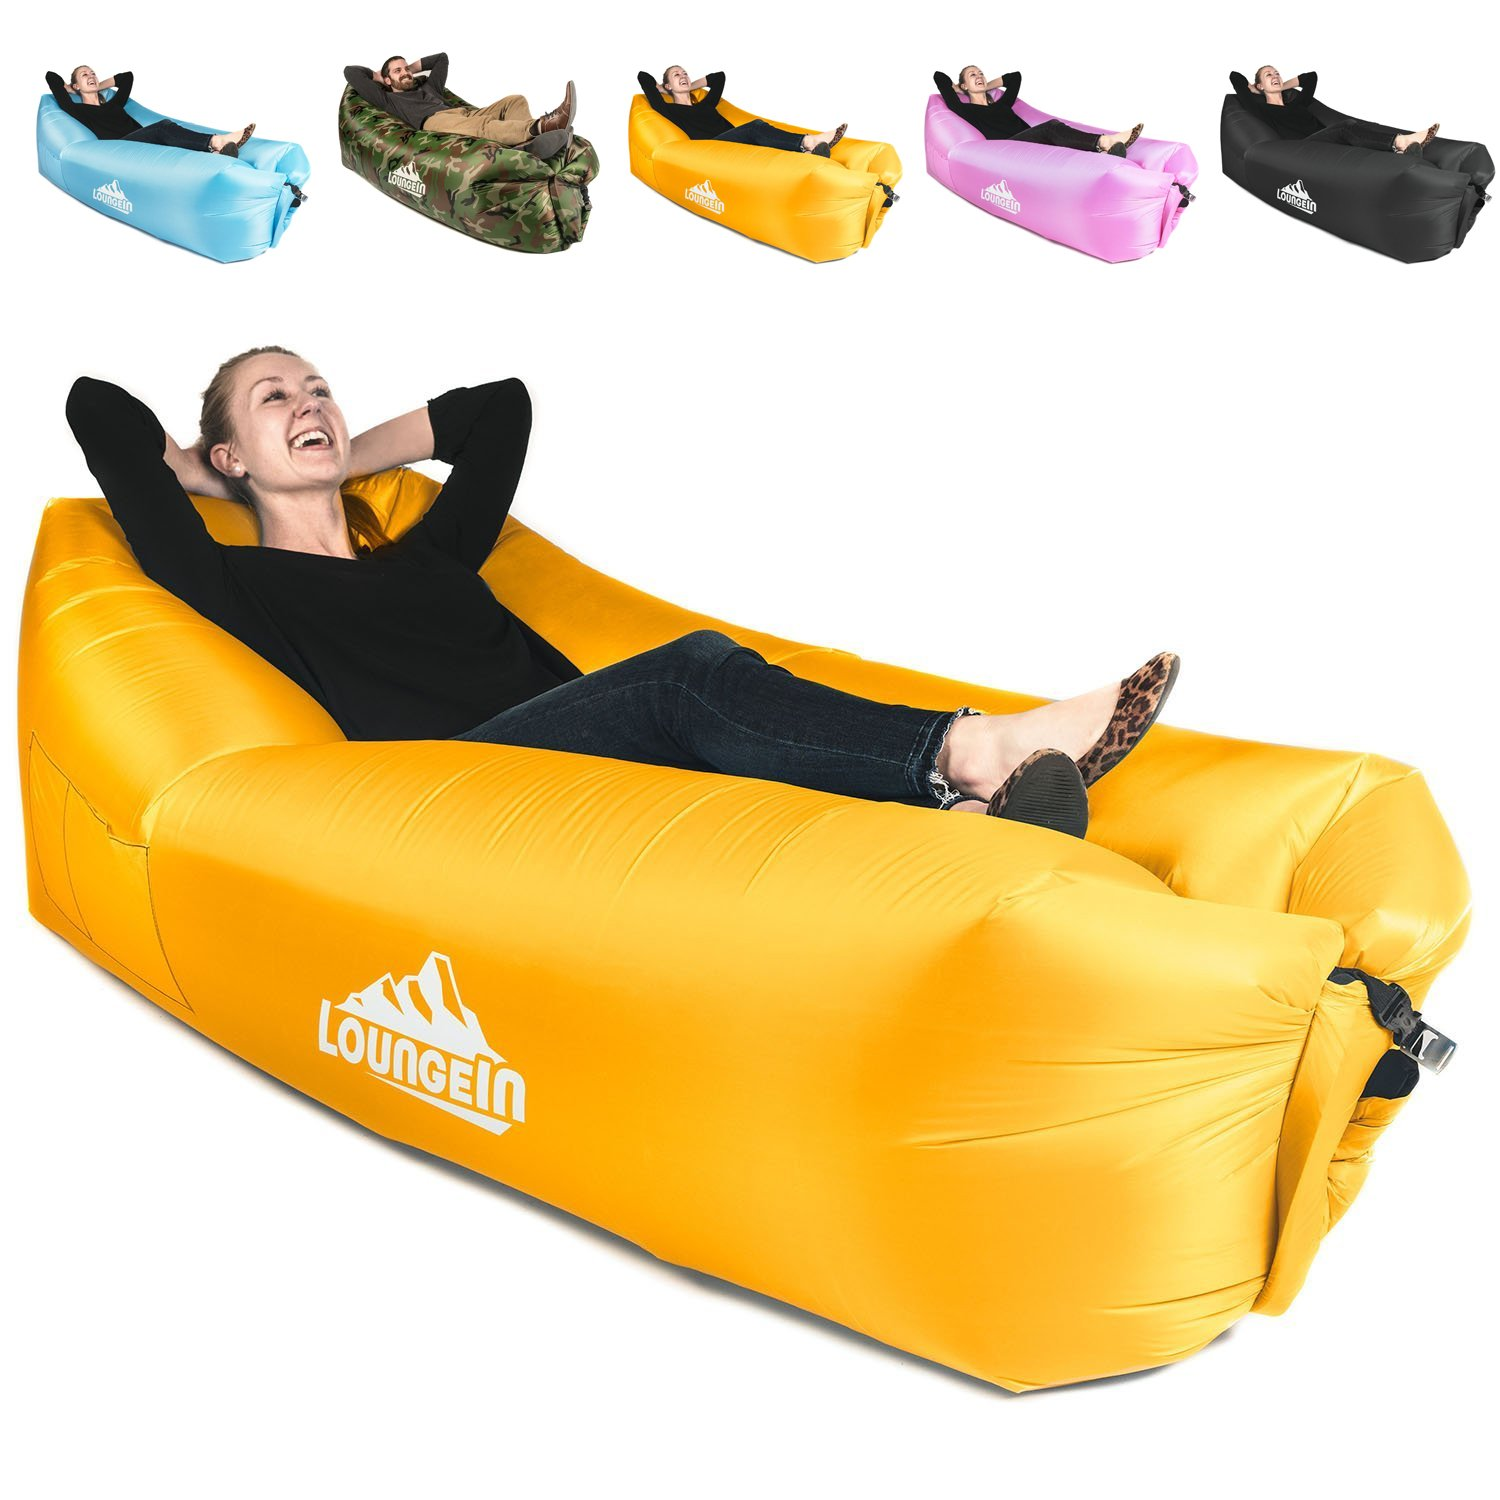 Lounge Outdoor at The Beach or Camping KyRush It Inflatable Lounger air Couch Chair Sofa Pouch Lazy Hammock Blow up Bag Lay longers Chairs are The Best Outdoor Wind hammocks Around